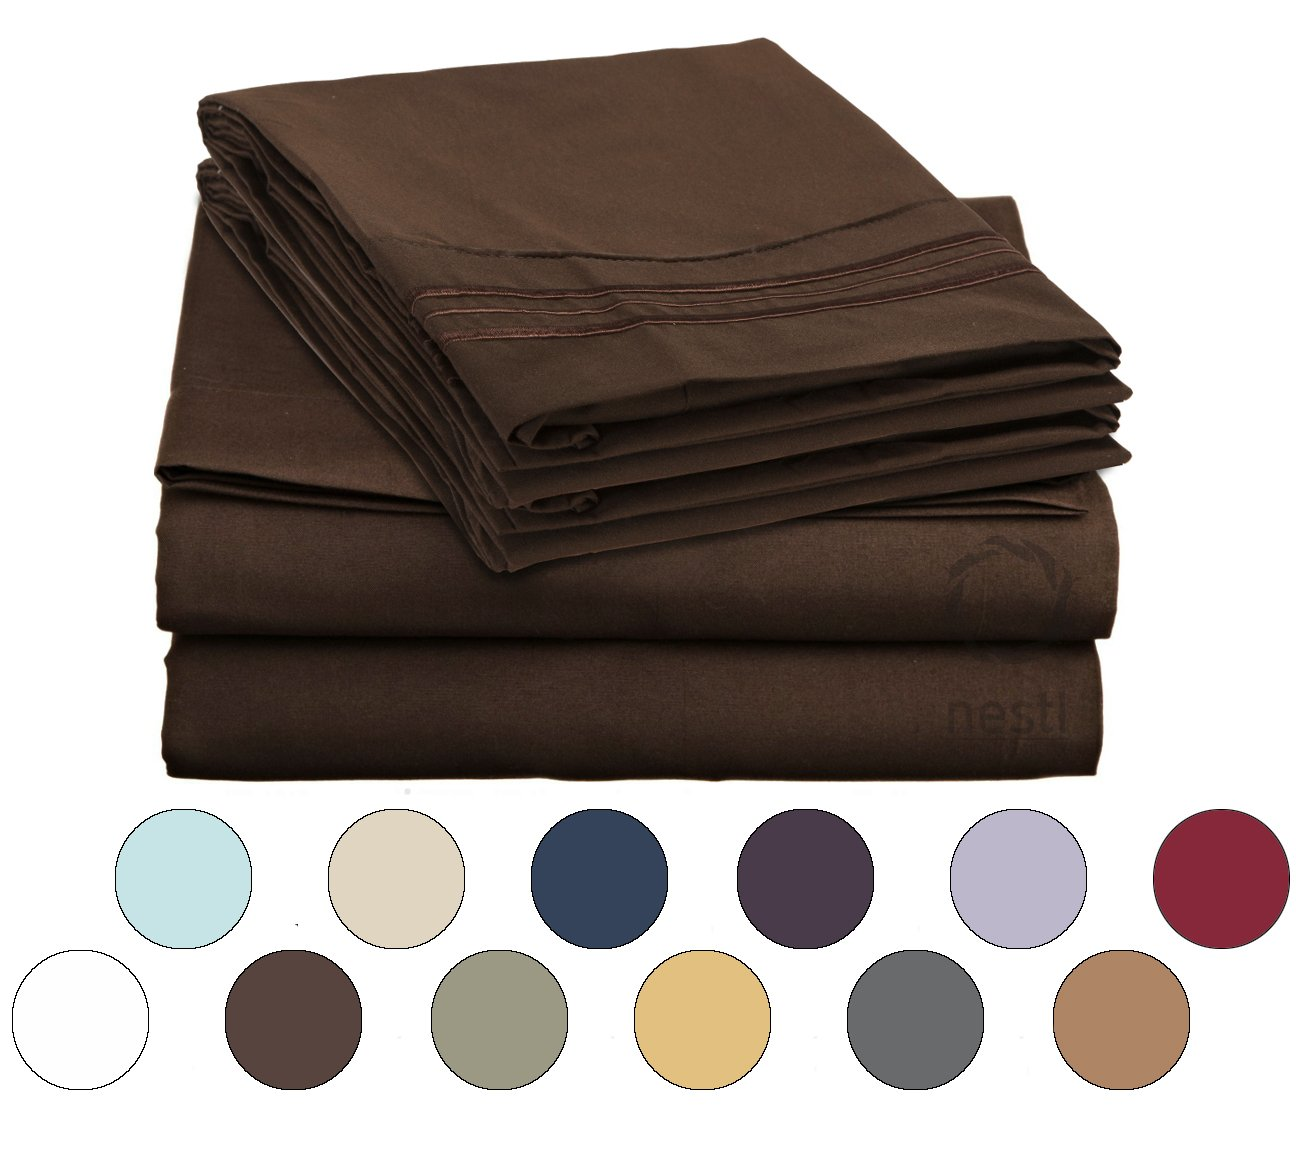 Deep Pocket Fitted Sheet - KING - CHOCOLATE BROWN